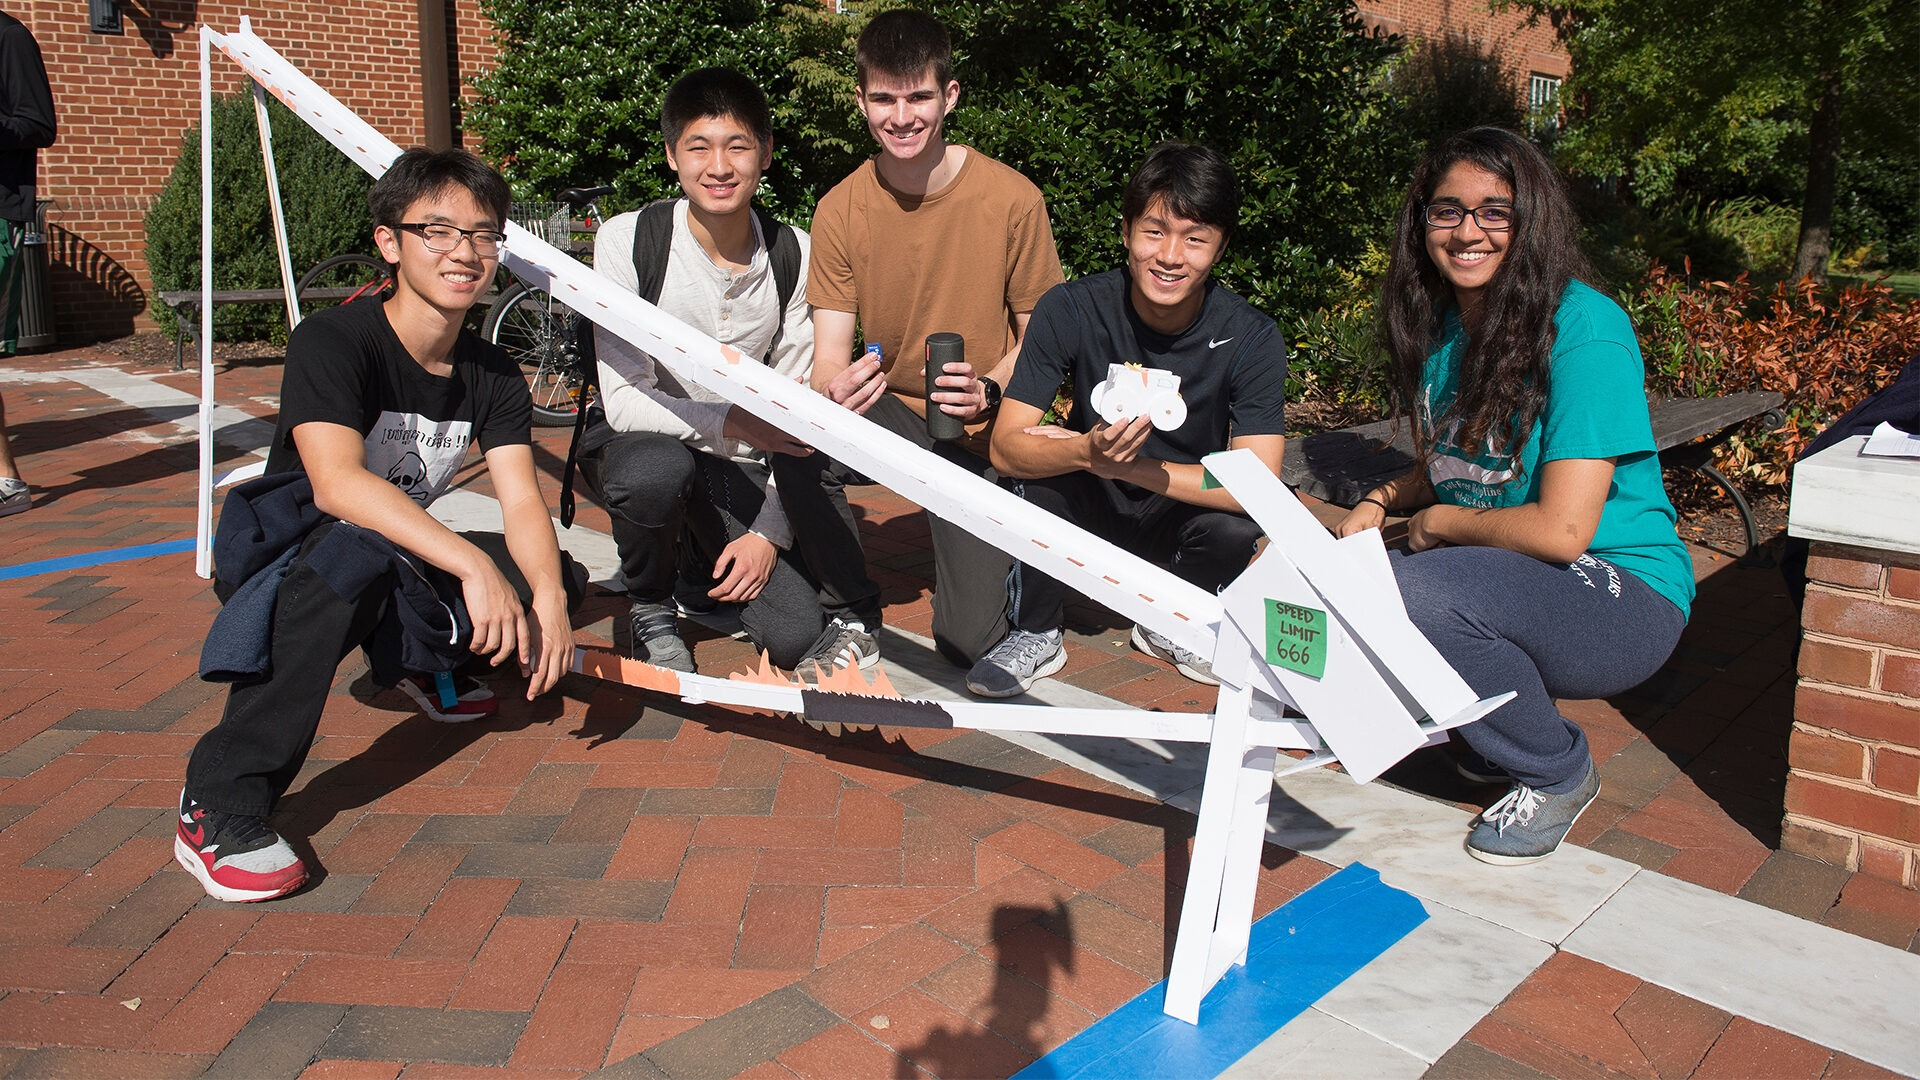 A group of students pose outside with their foam-core roller coaster design.